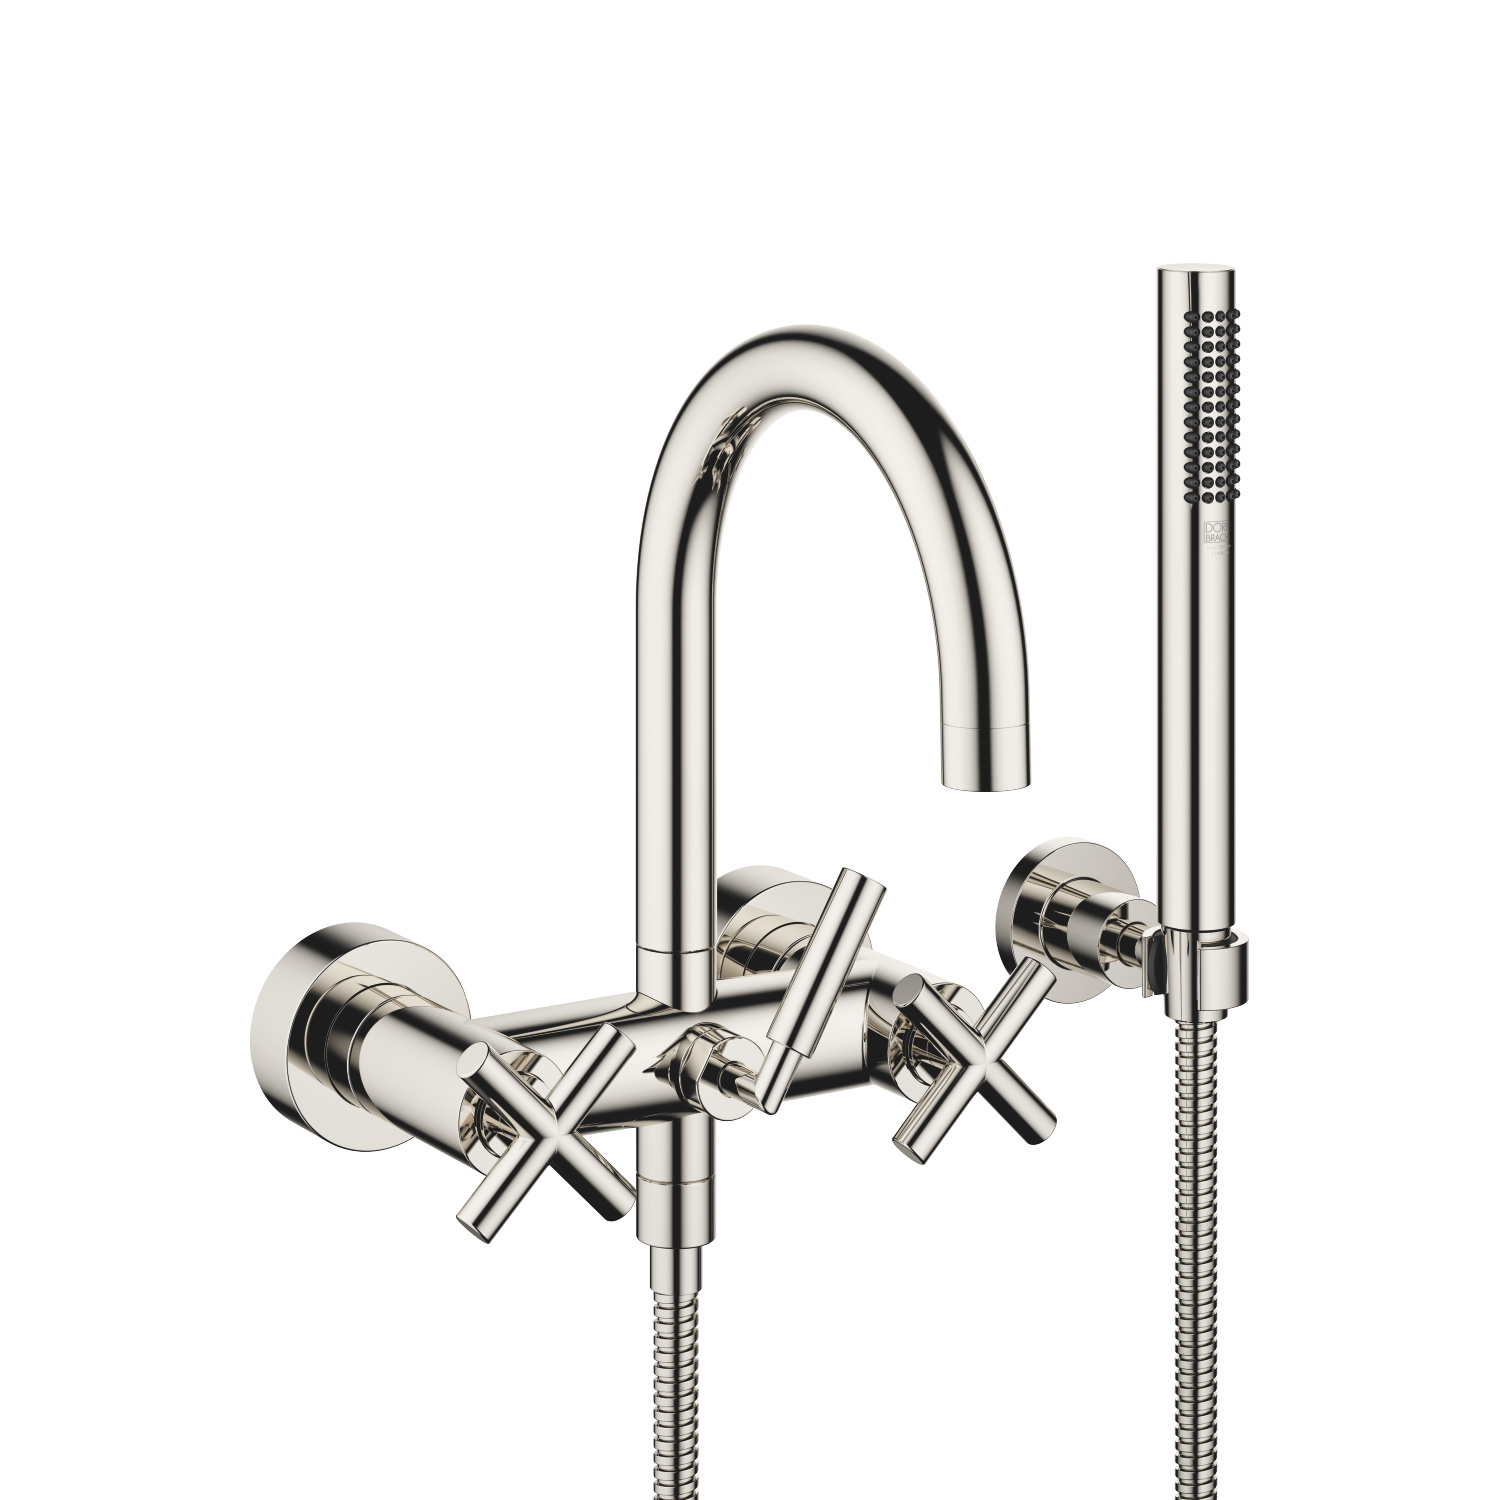 Bath mixer for wall mounting with hand shower set - platinum - 25 133 892-08